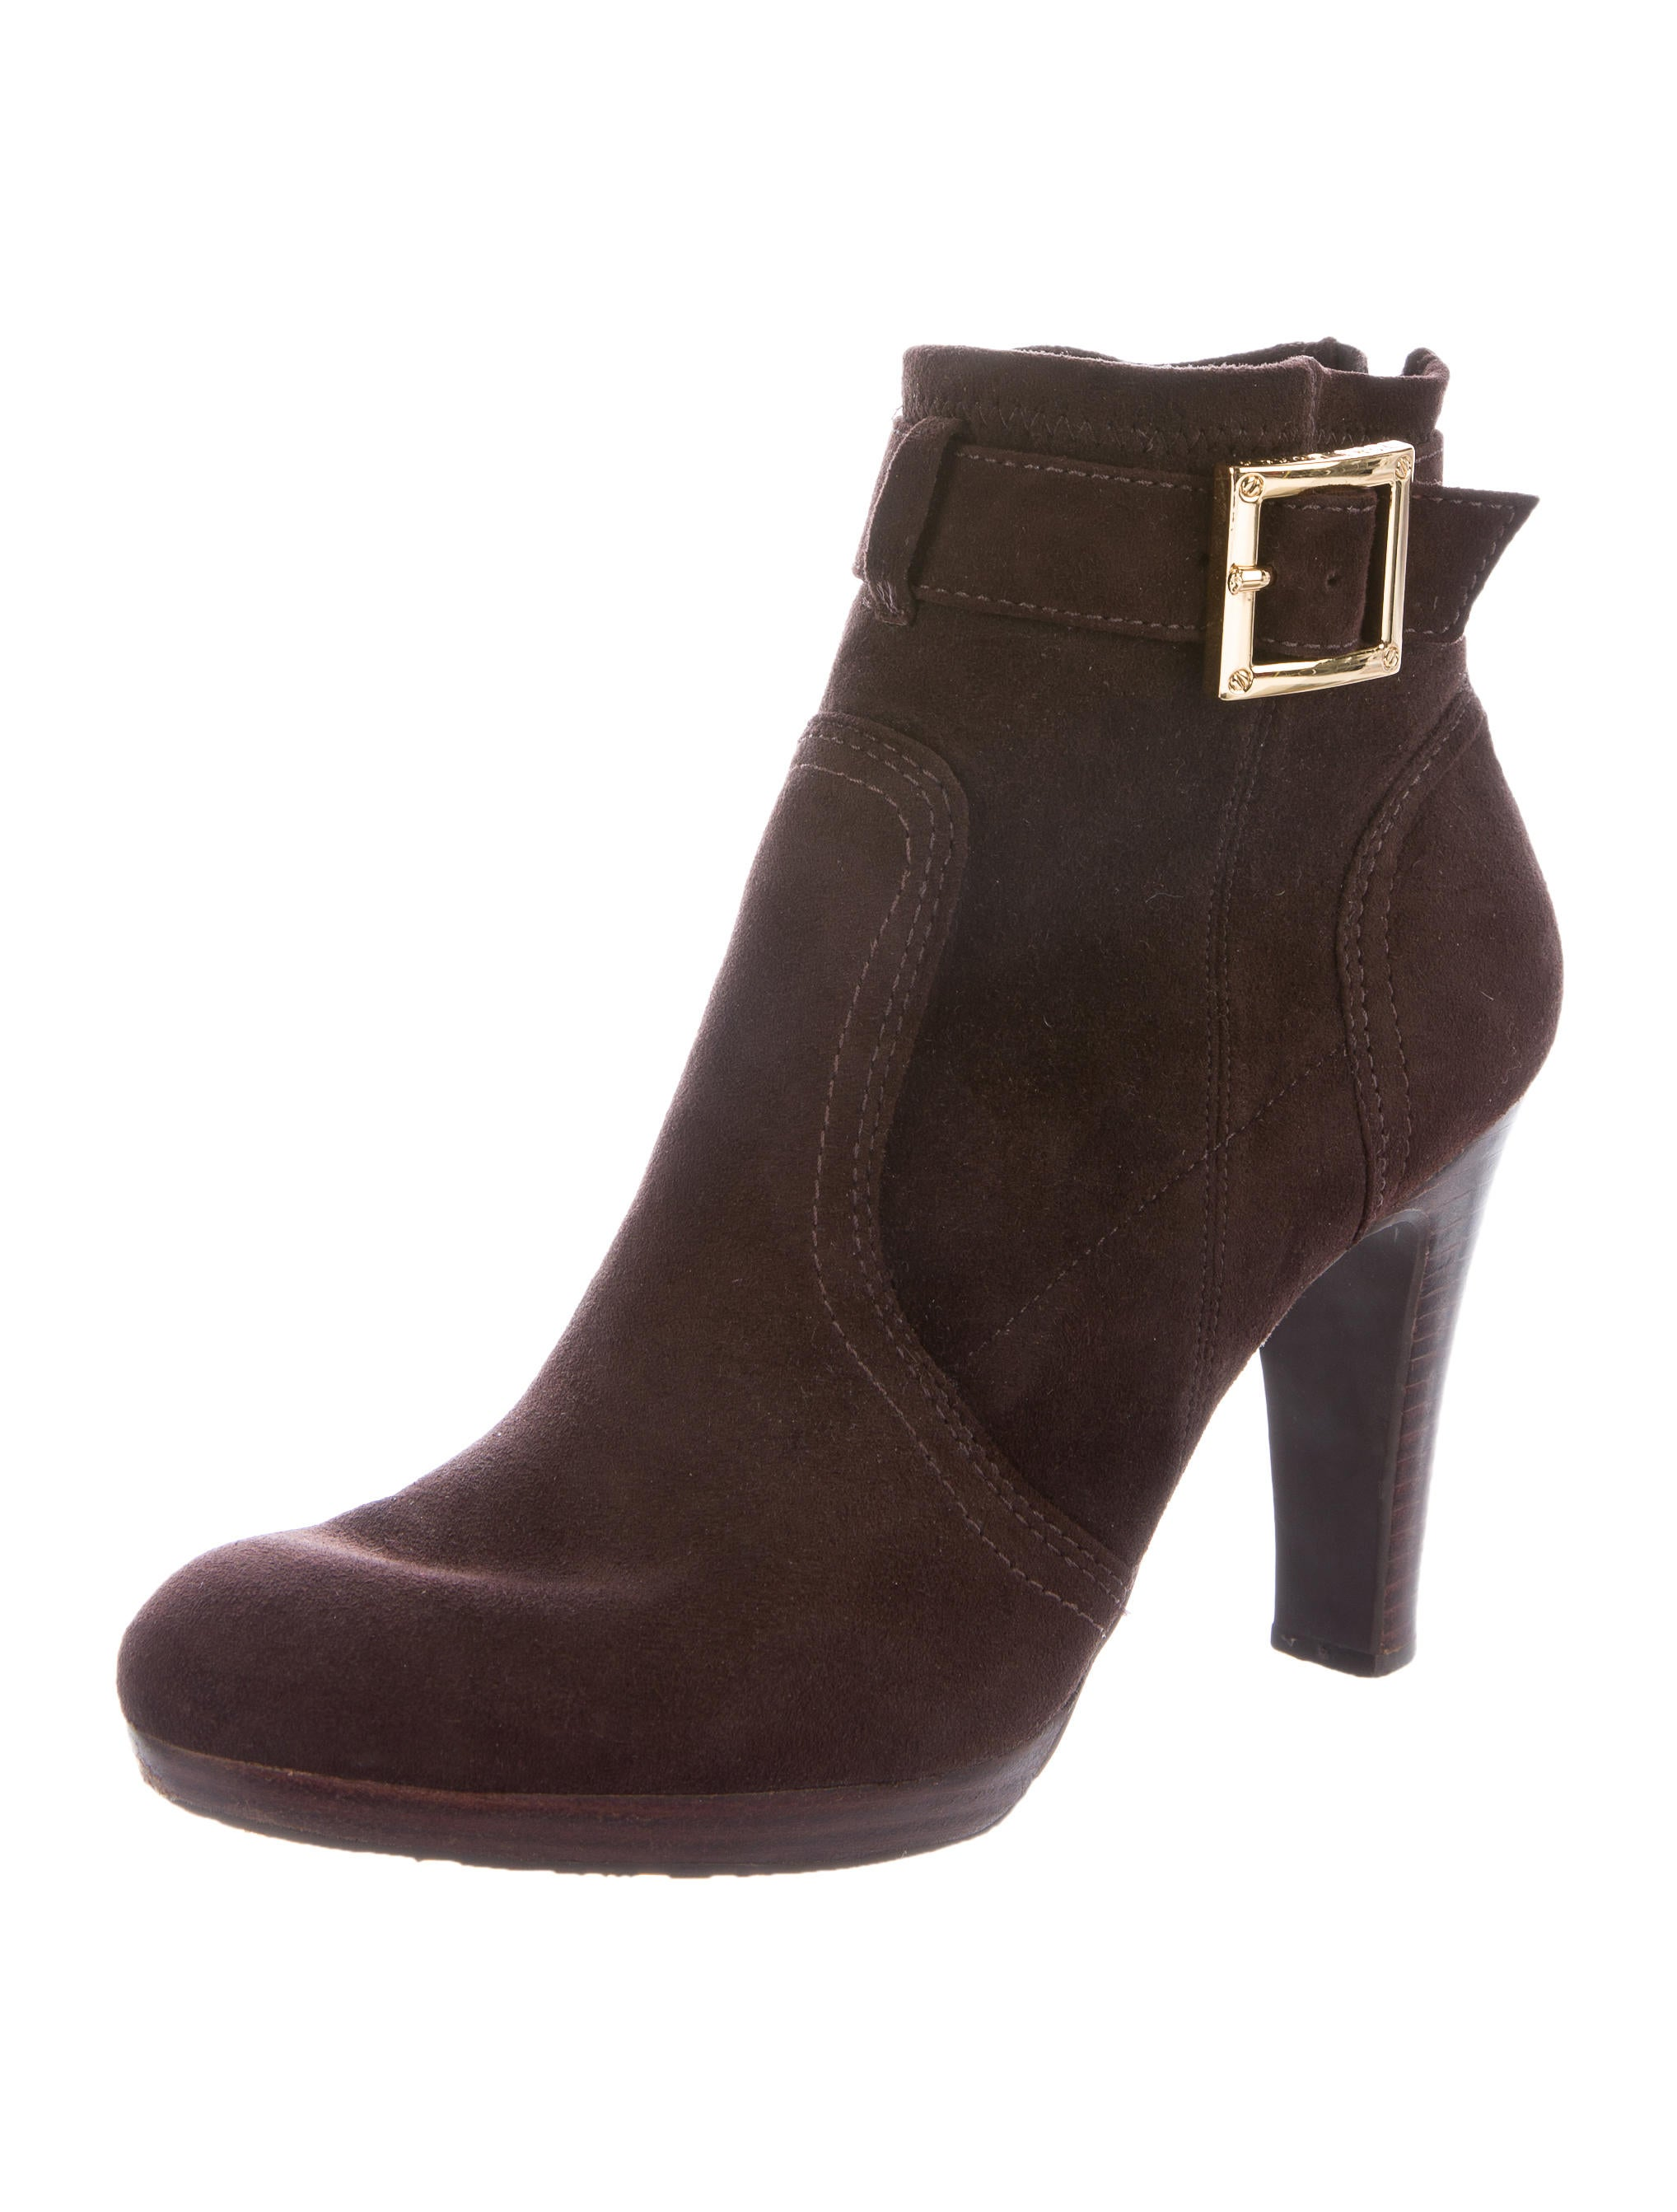 burch suede buckle accented ankle boots shoes wto75365 the realreal